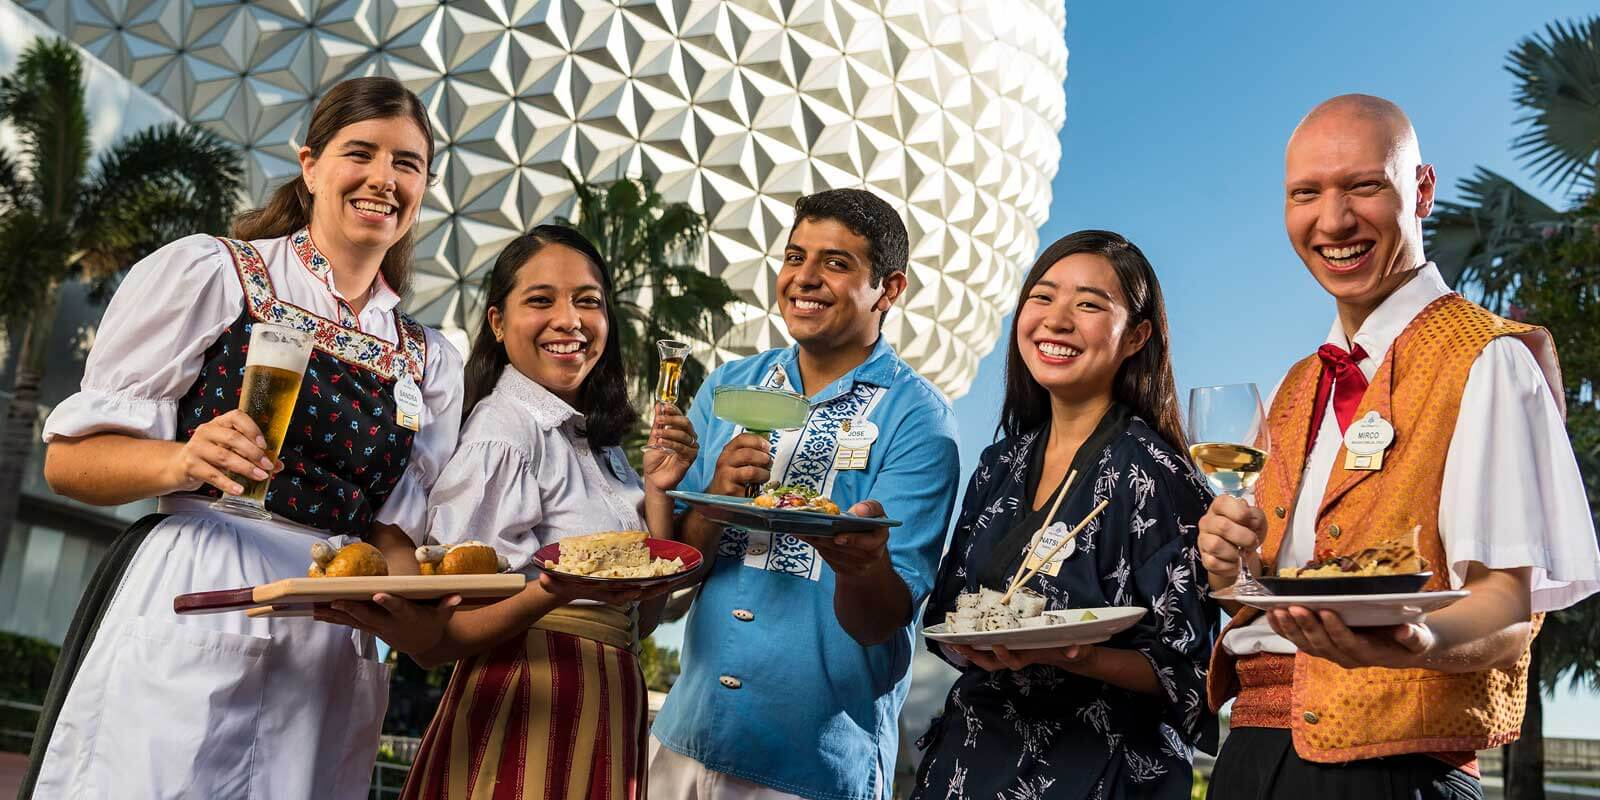 A group of 5 Disney employees holding international cuisine while dressed in international-inspired uniforms.